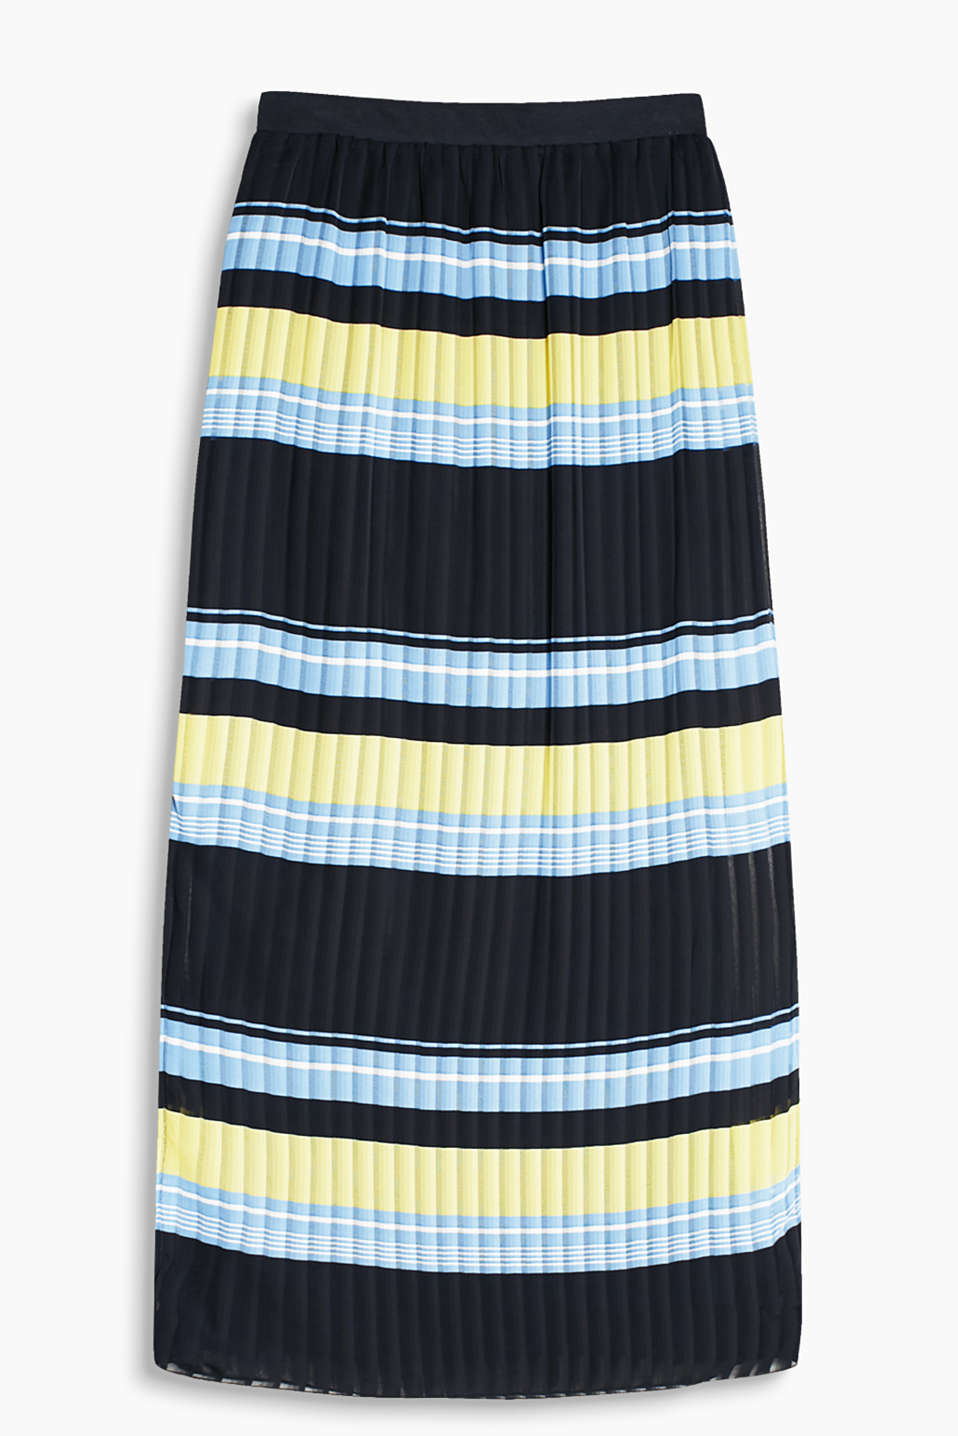 Maxi skirt made of comfortable blended cotton with an elasticated waistband and high hem slits, in a trendy striped look